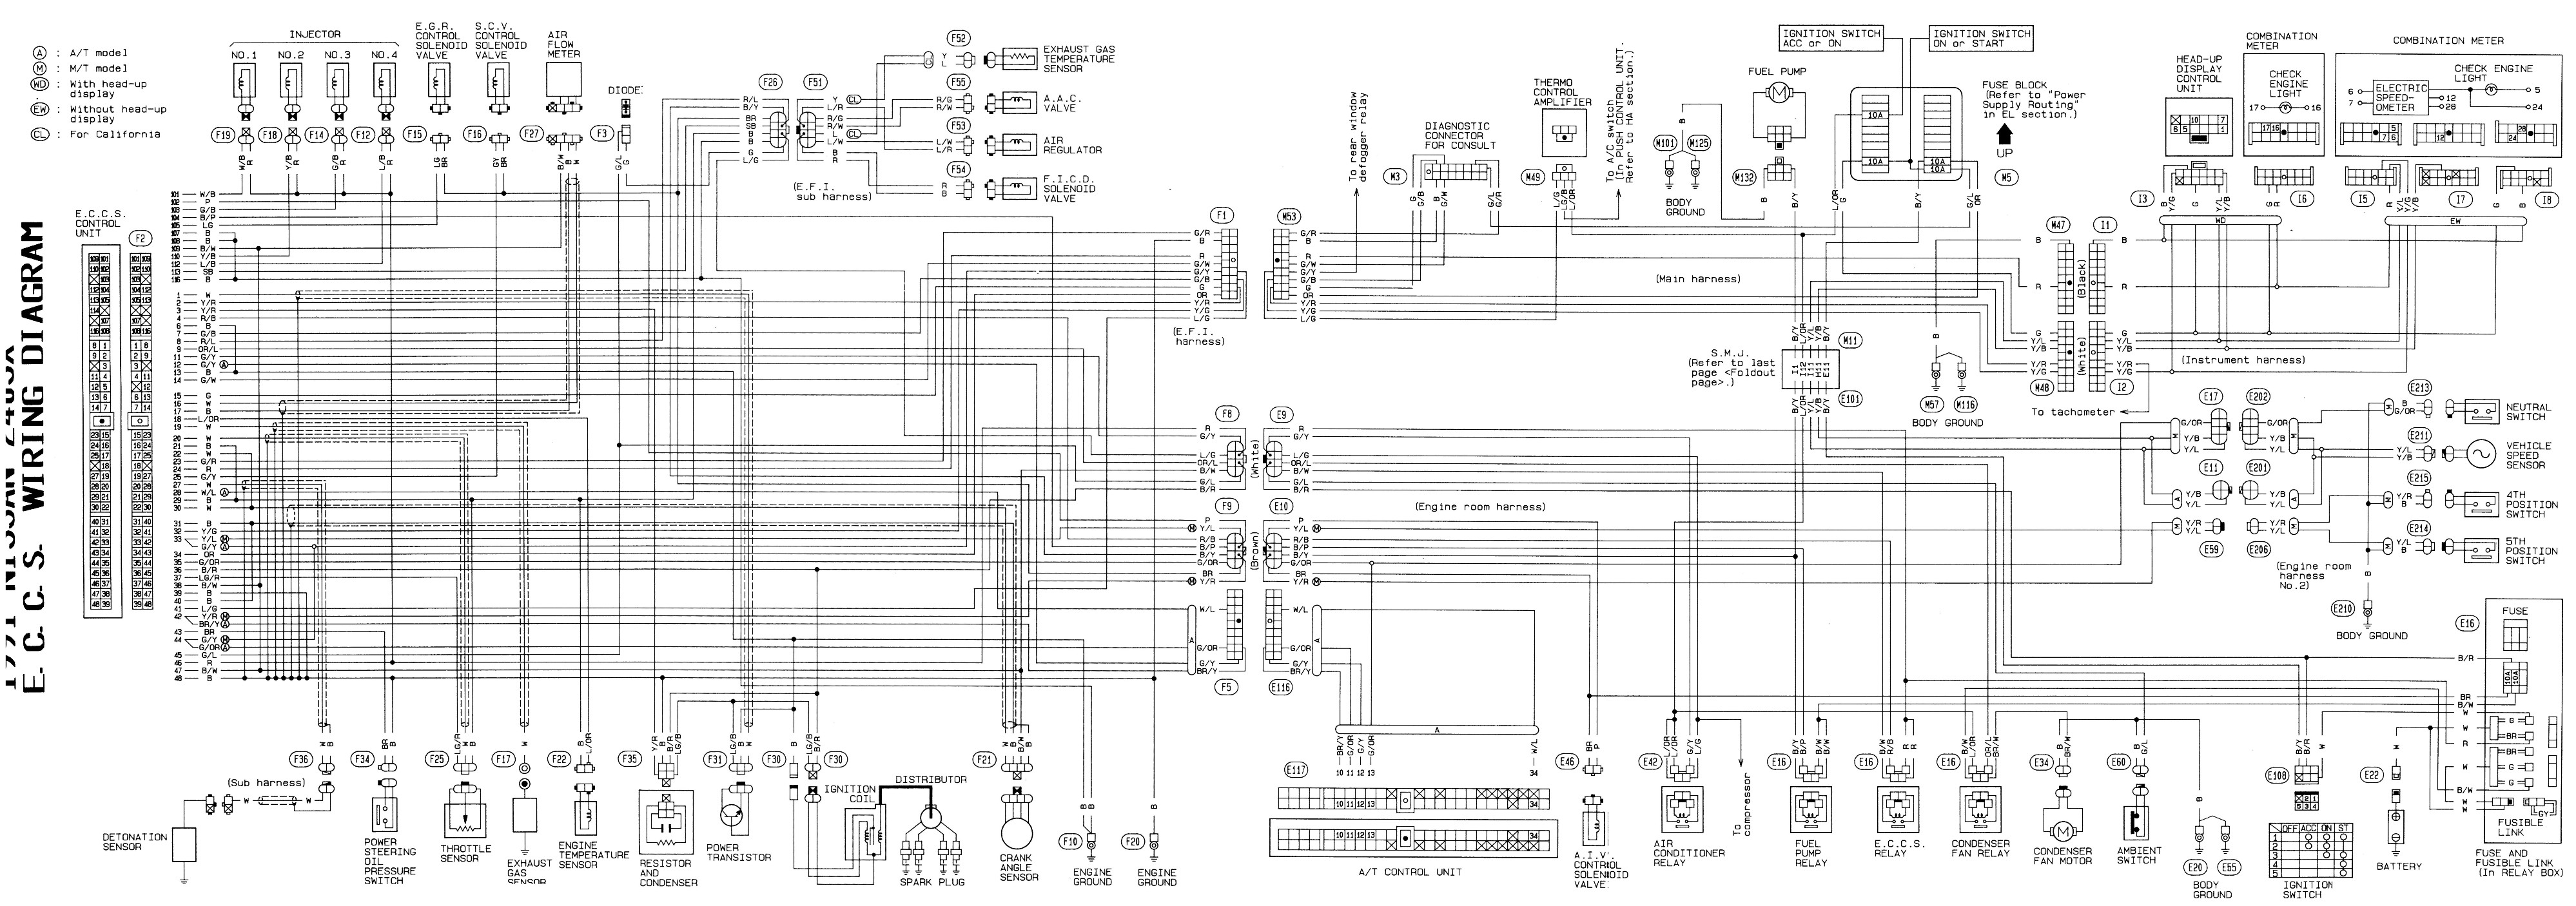 DIAGRAM] Nissan 240sx Wiring Harness Diagram FULL Version HD Quality  Harness Diagram - WIREELECTRICPDF.LECOCHONDOR.FRWiring And Fuse Database